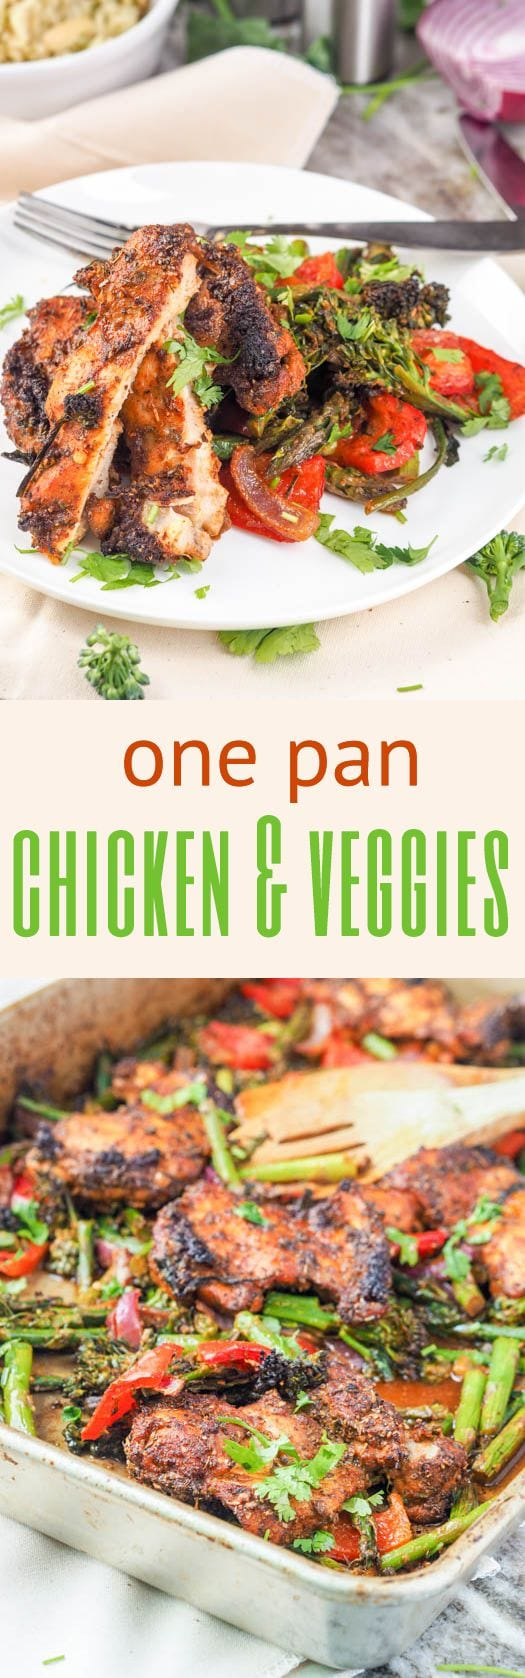 30 minute one pan chicken and veggies is the perfect low fuss easy weeknight dinner meal. Made with chicken thighs mixed with asparagus, red pepper, red onion, and broccoli. GF, DF & Paleo. #chicken #onepanmeals #paleo #glutenfree #healthy #dinner